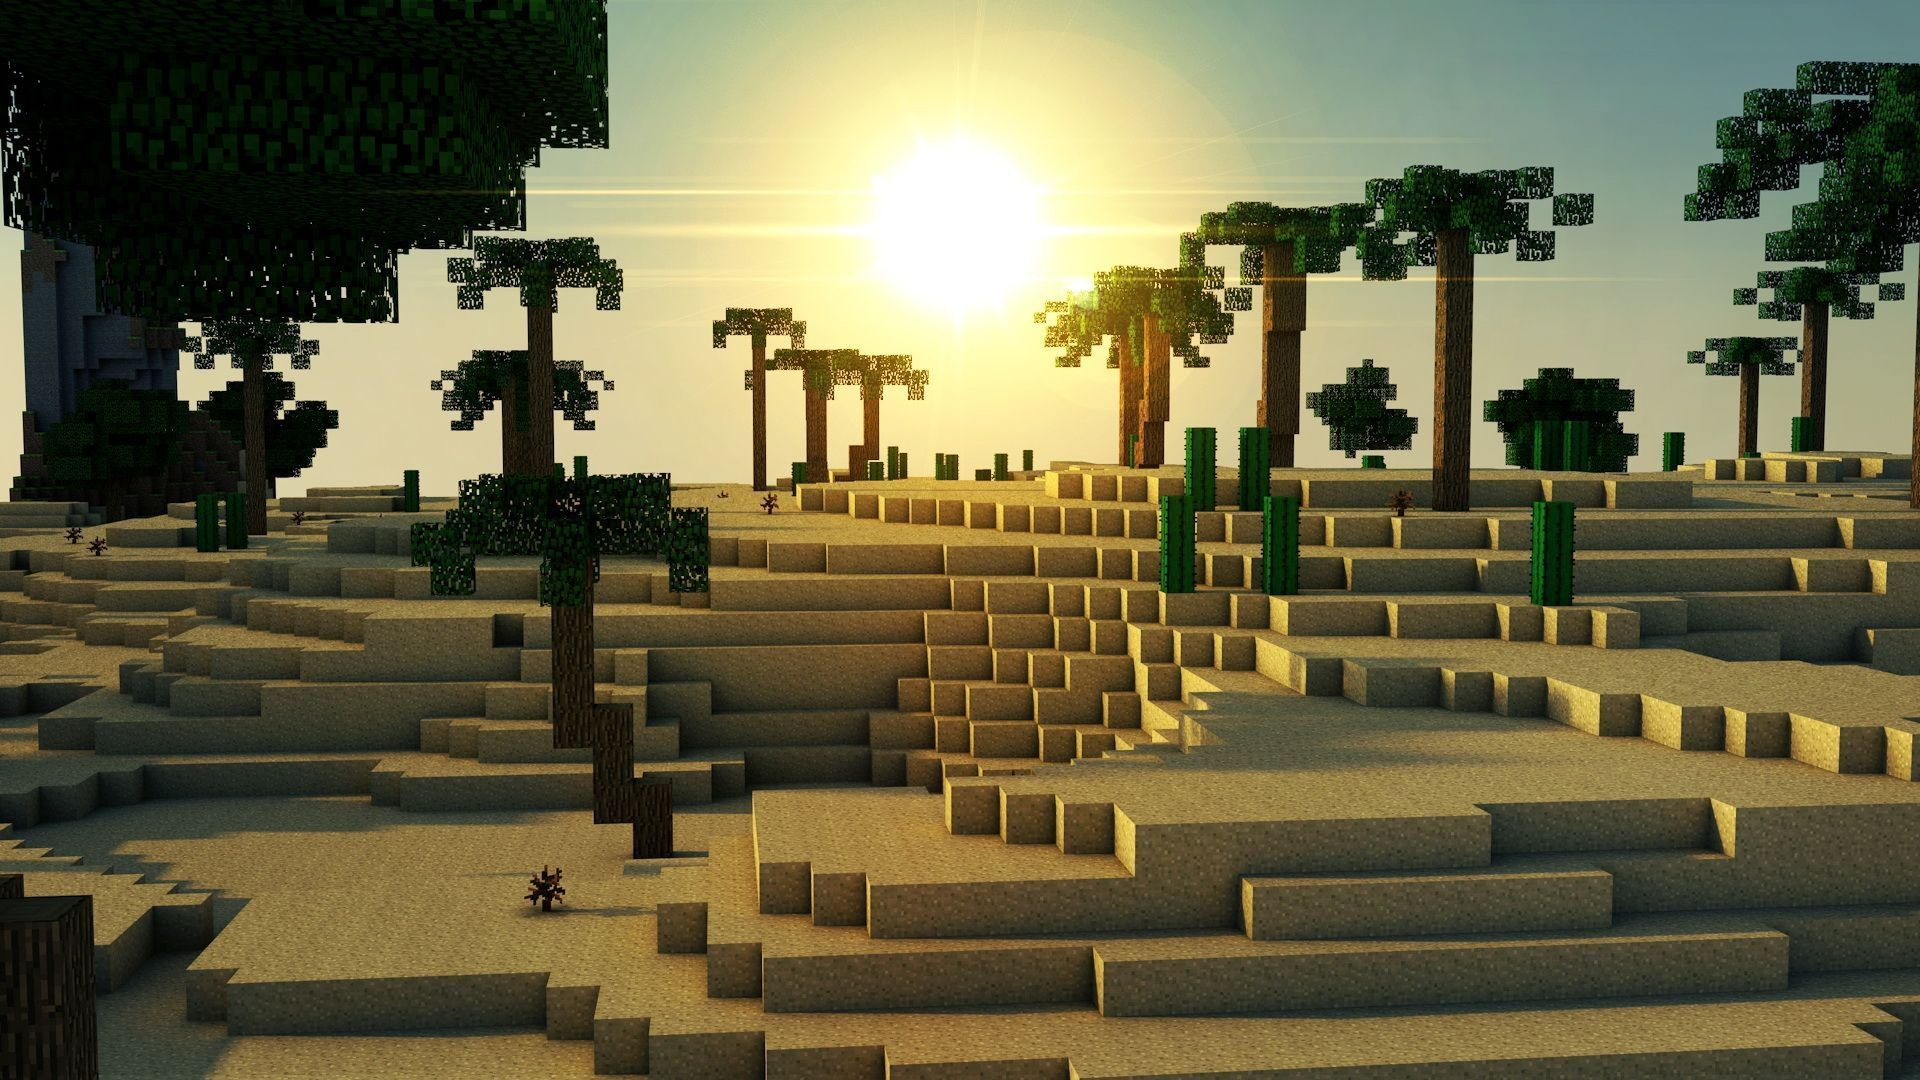 1920x1080 Minecraft Images. Beautiful Minecraft Wallpapers HD Quality